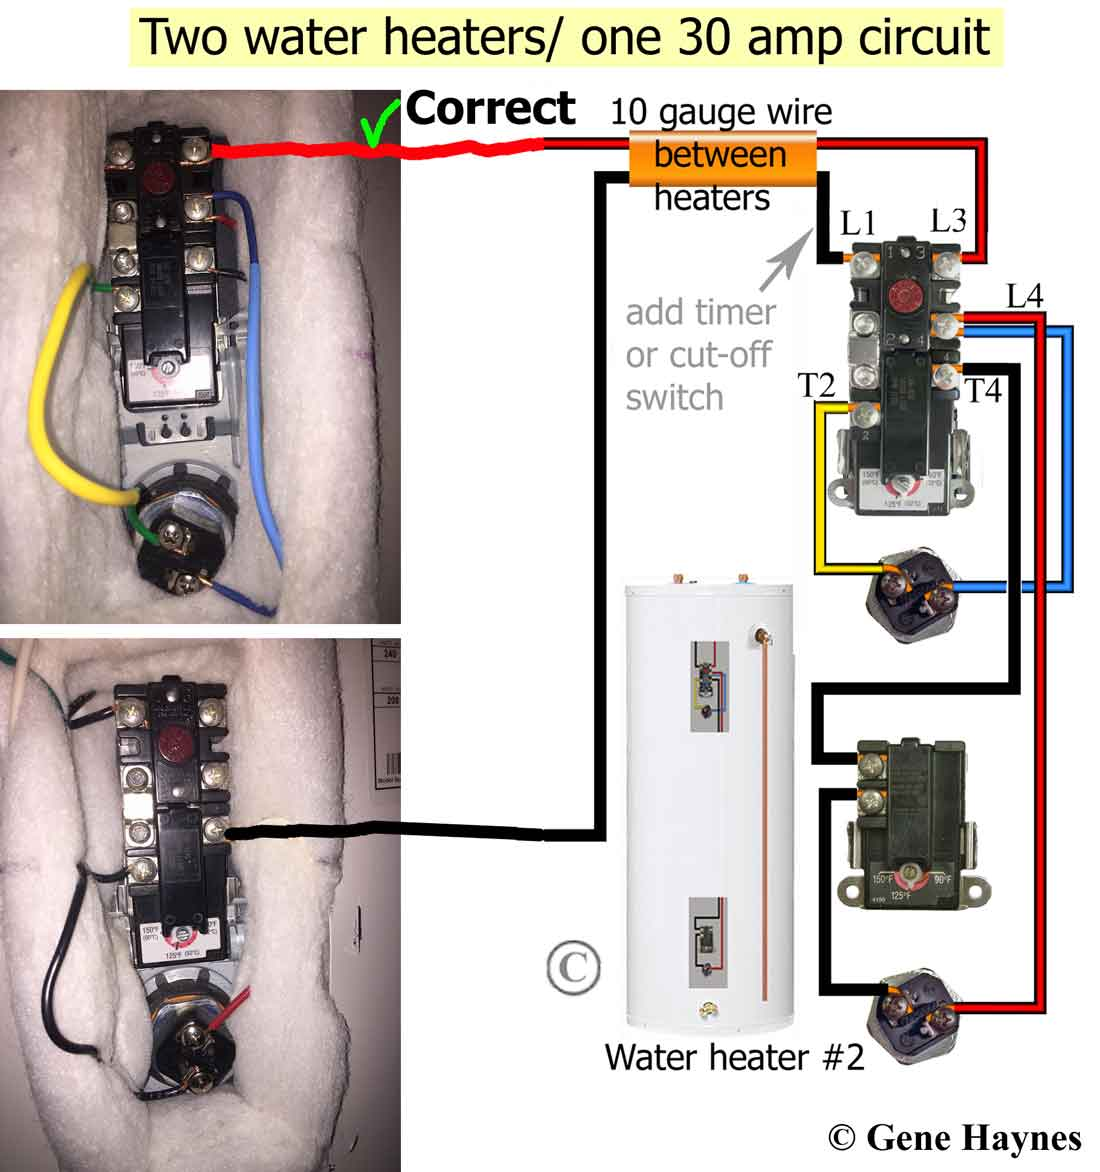 Water Heater Typical Electric Water Heater Construction Wiring Diagram